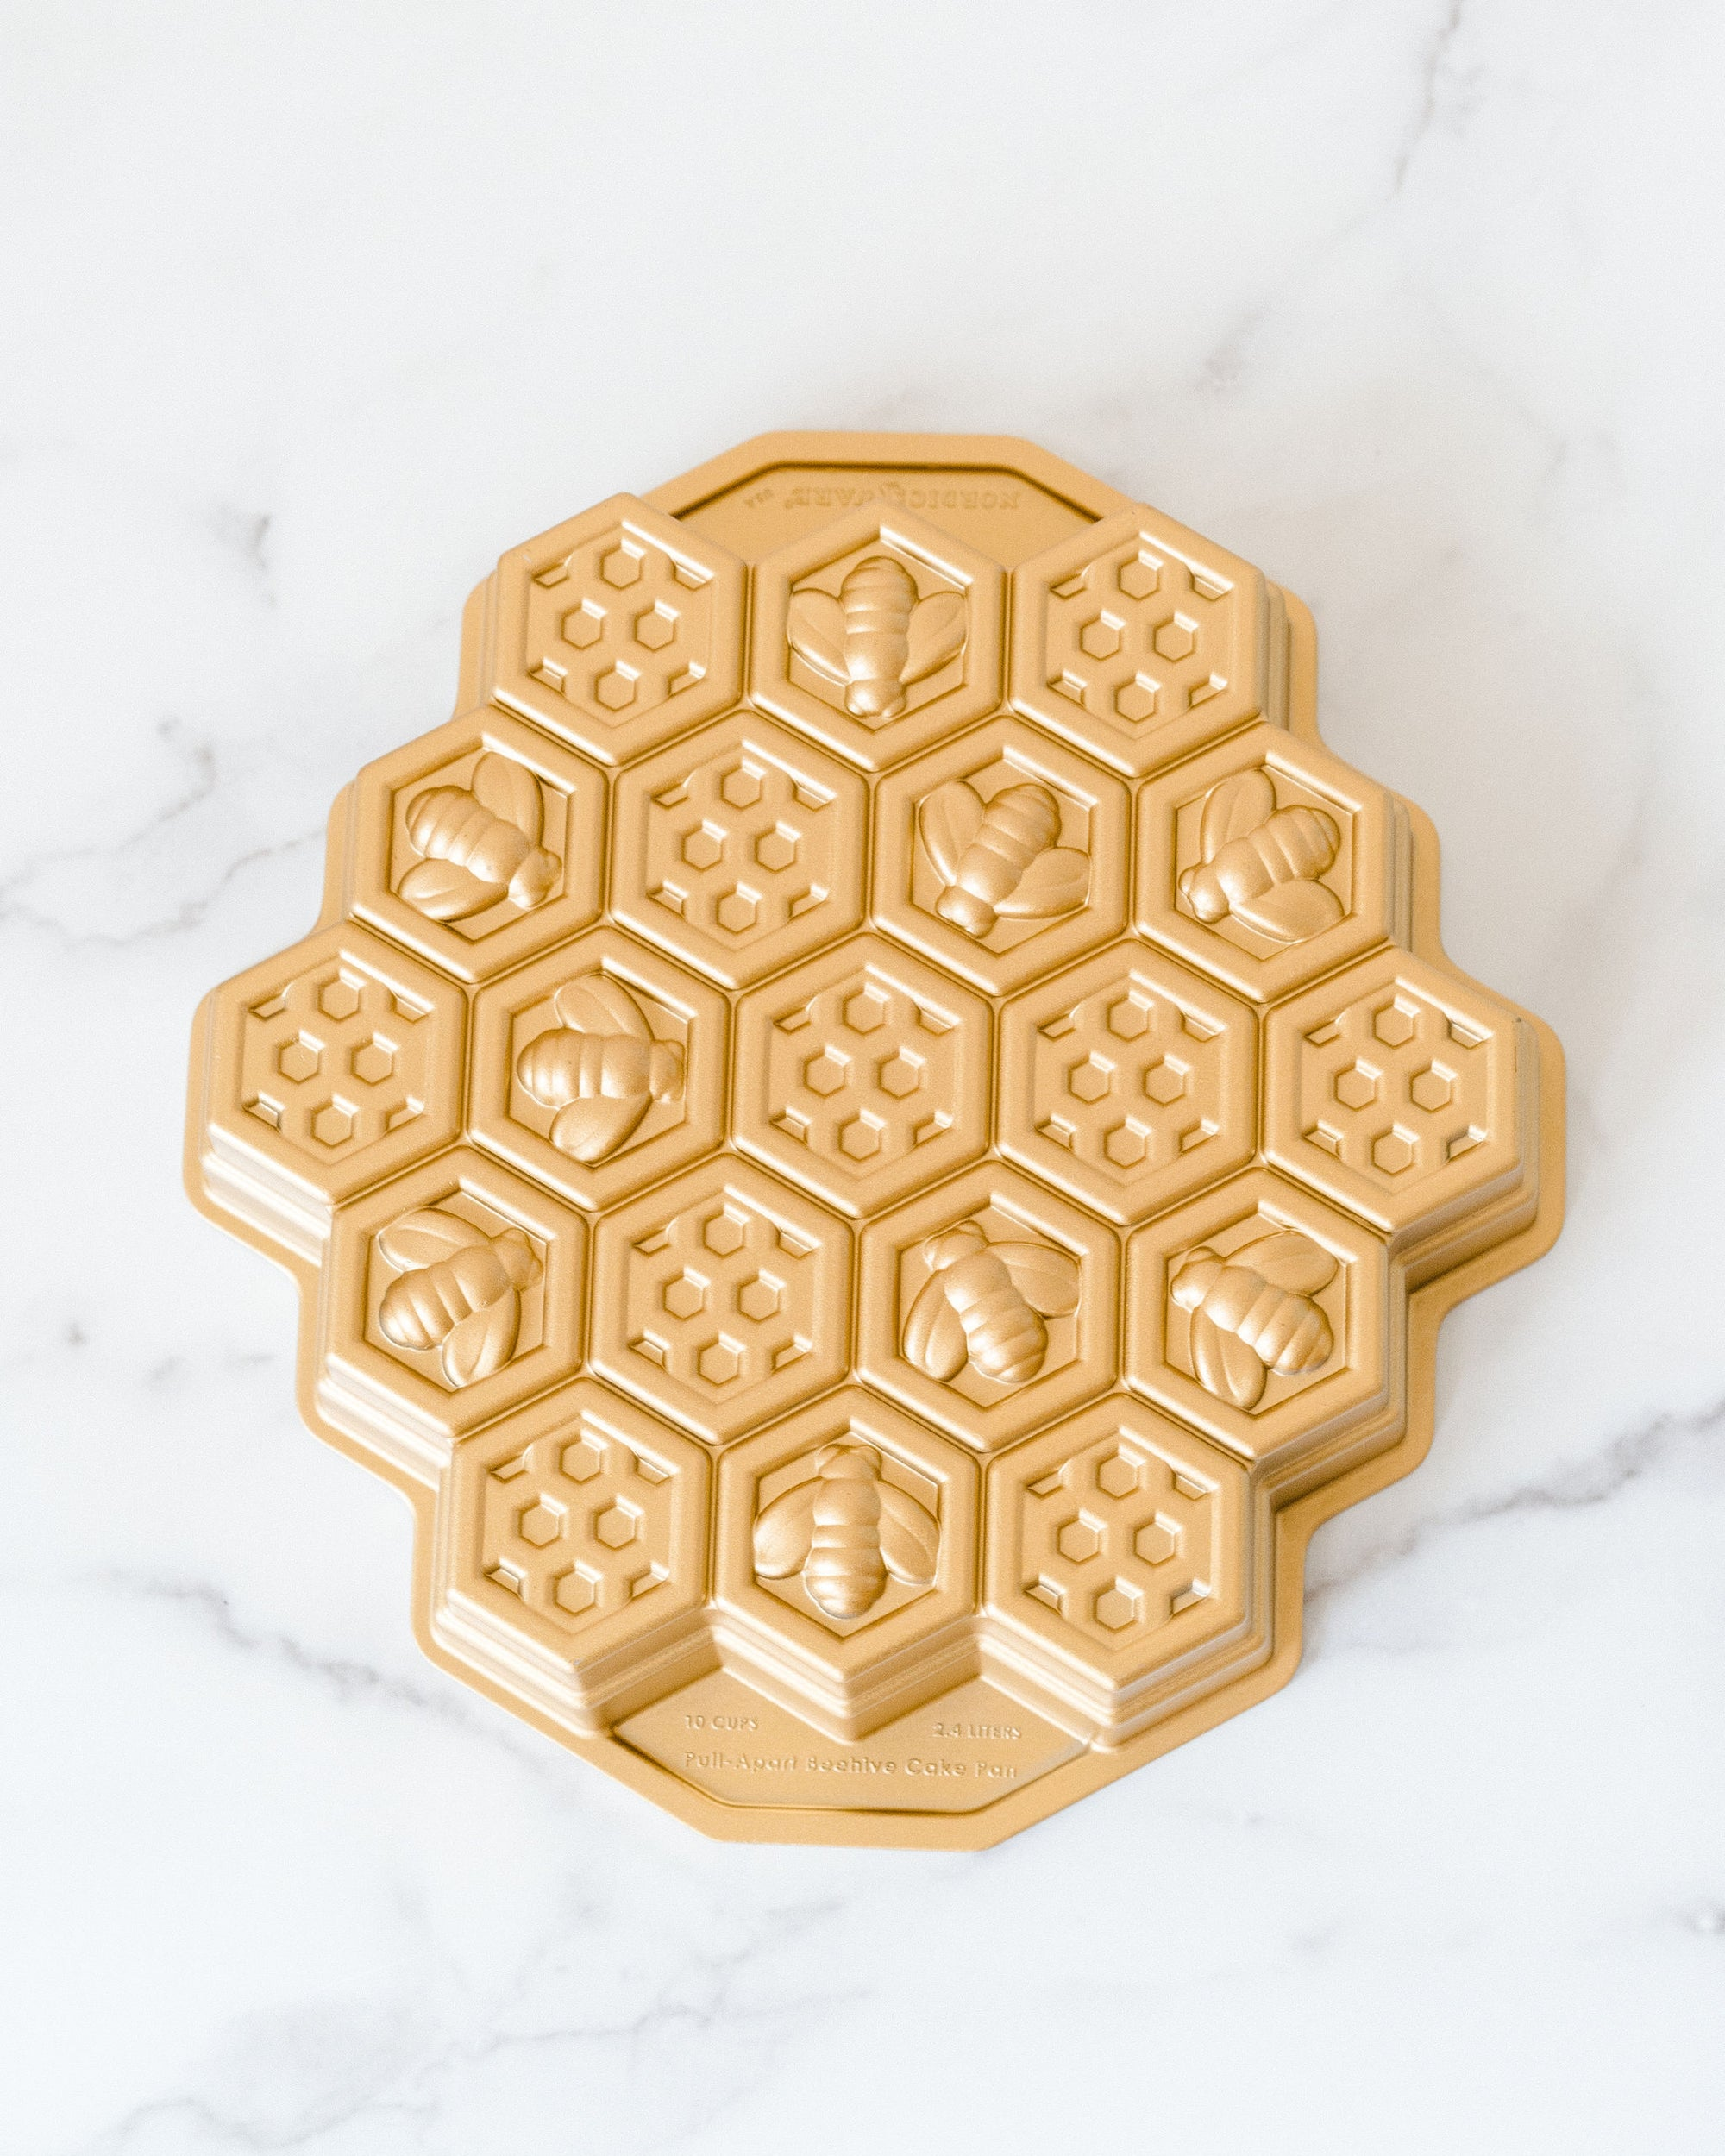 Honeycomb Pull-Apart Pan